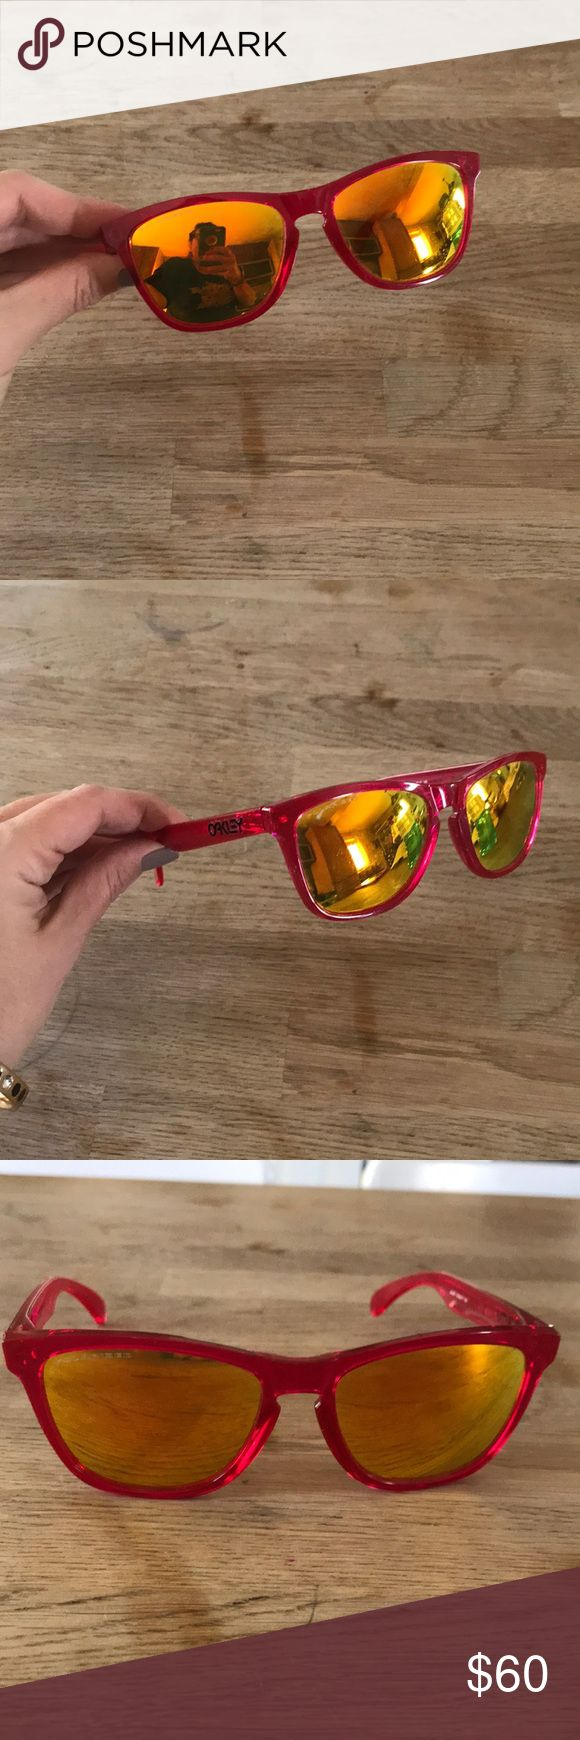 Oakley frogskin sunglasses 🐸 Oakley frogskins. Polarized lenses. Have some scratches on the lense that are small. Refer to pics. Super cute but I'm moving and need the money. Hot pink and orange/ yellow fire lenses. Oakley Accessories Glasses